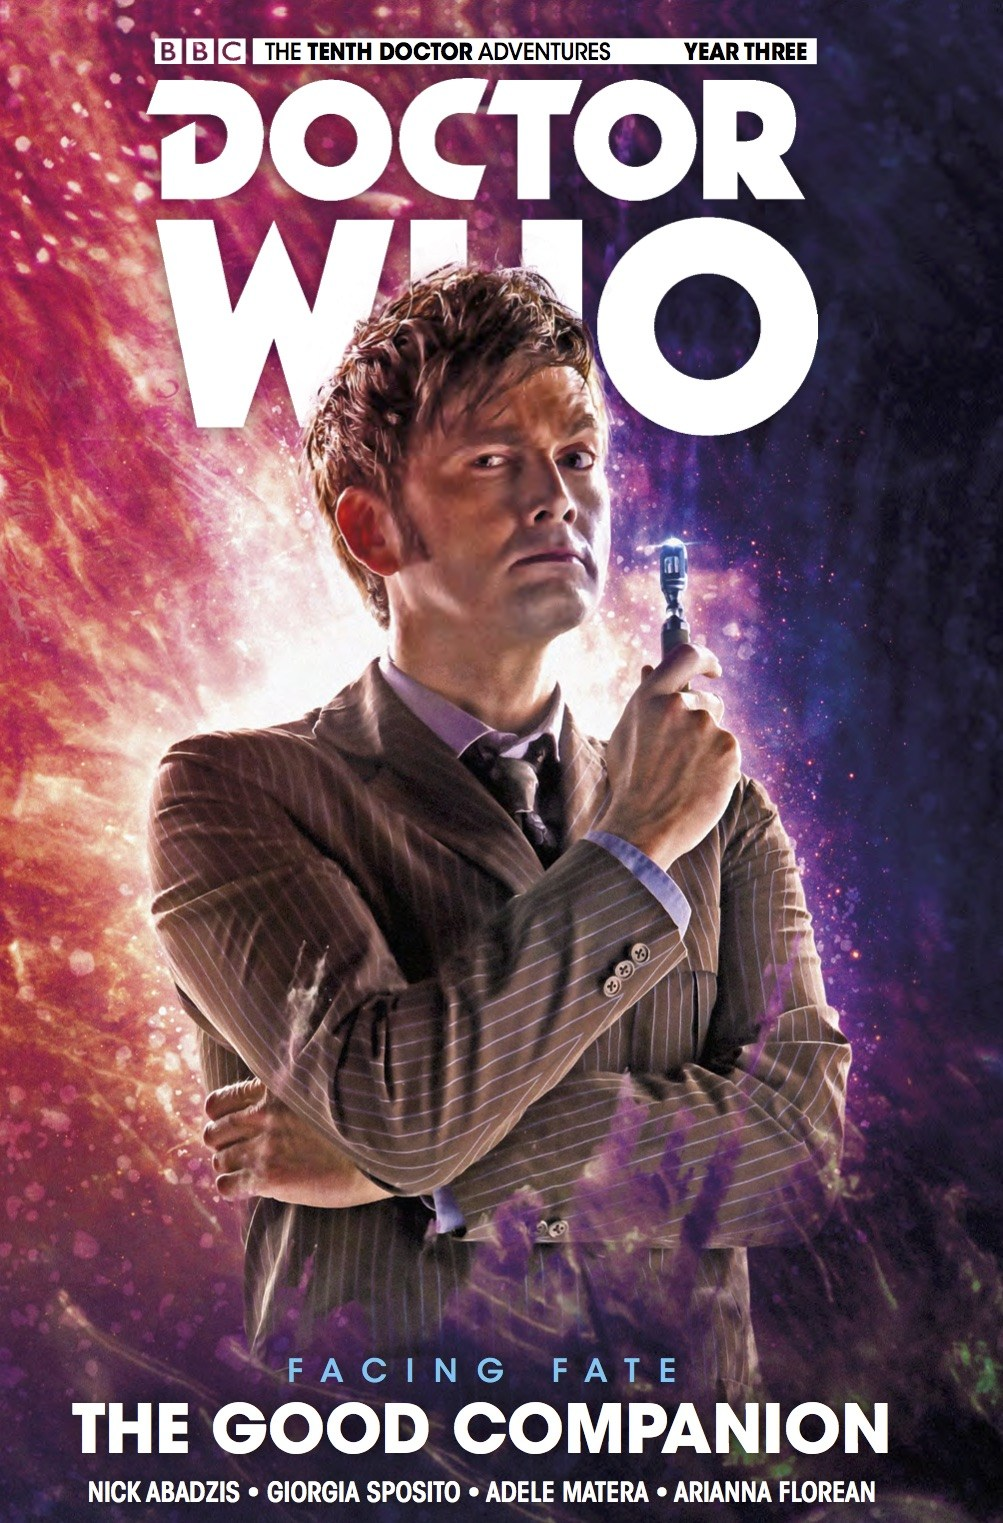 Doctor Who Year 3 Vol. 3 -  The Good Companion